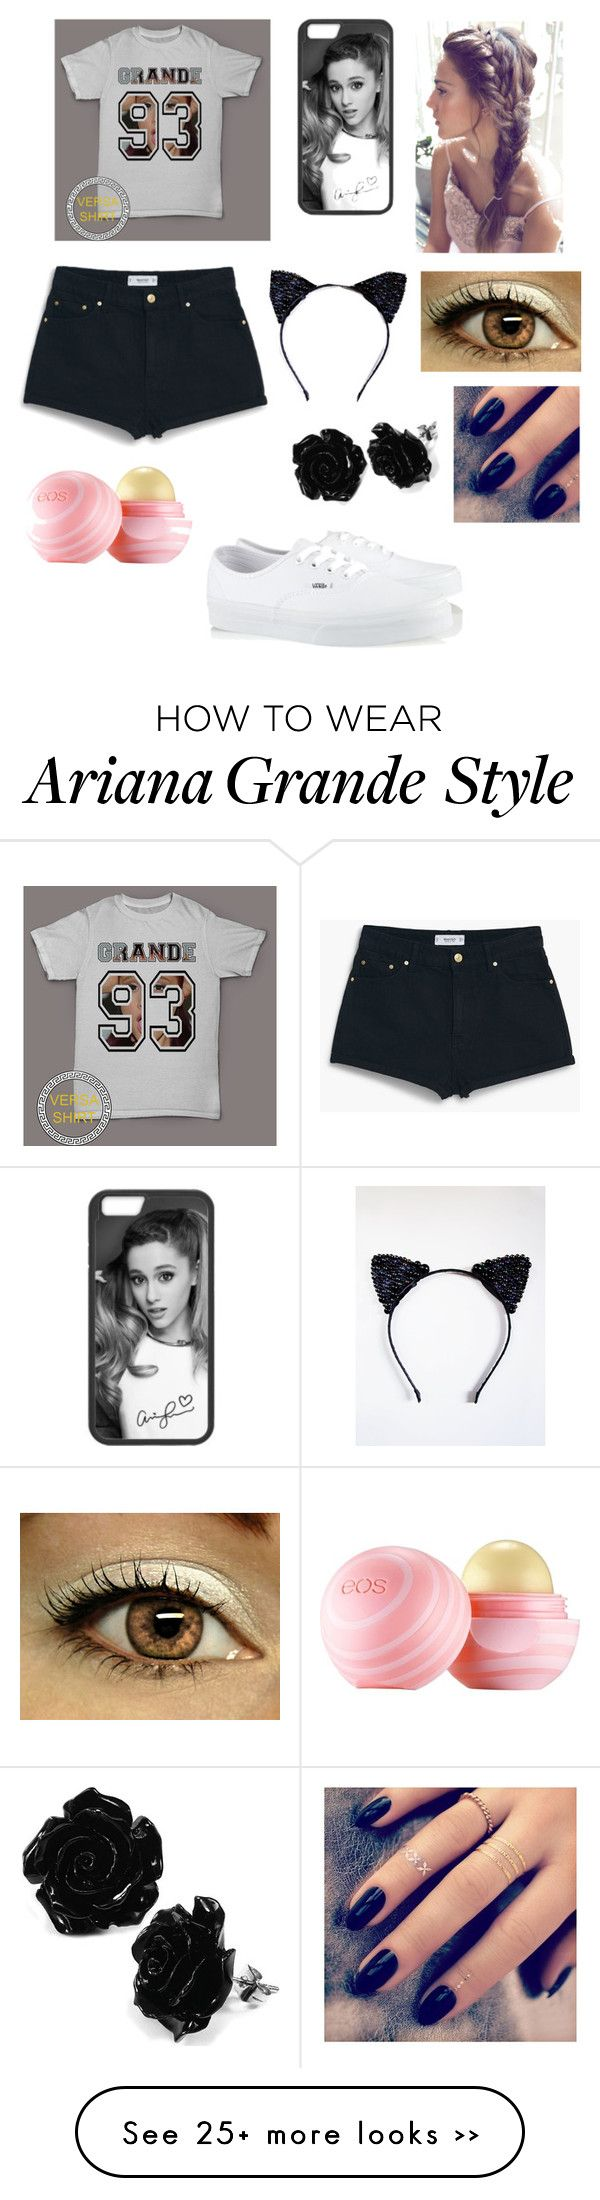 """Ariana grande concert"" by katelyn-huynh on Polyvore"